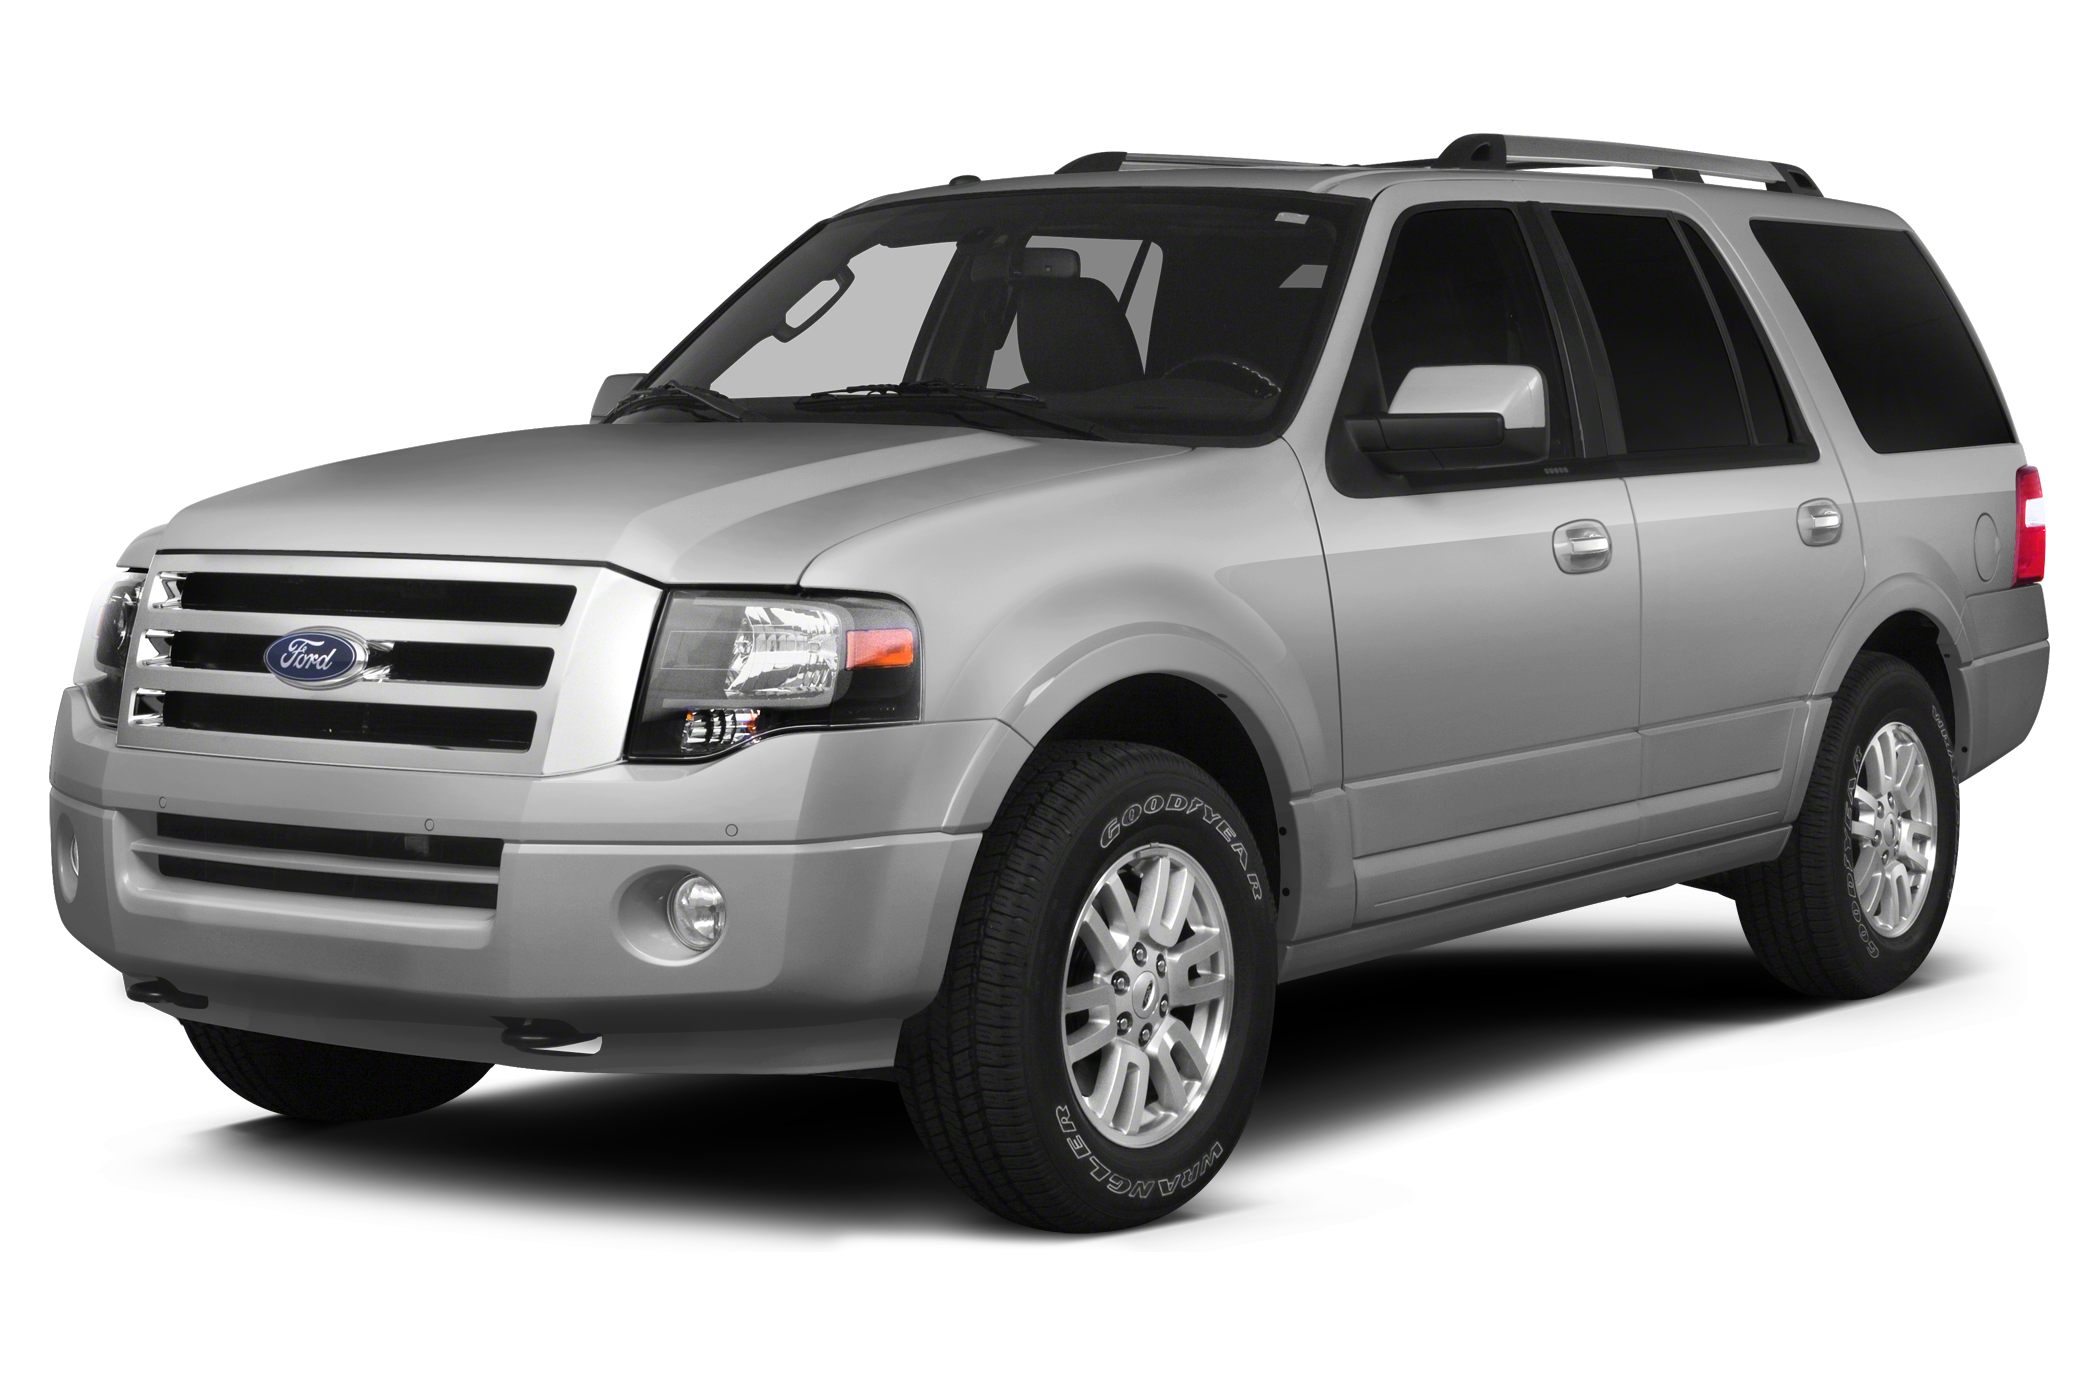 ford expedition engine 2014 miles per gallon autos post. Black Bedroom Furniture Sets. Home Design Ideas